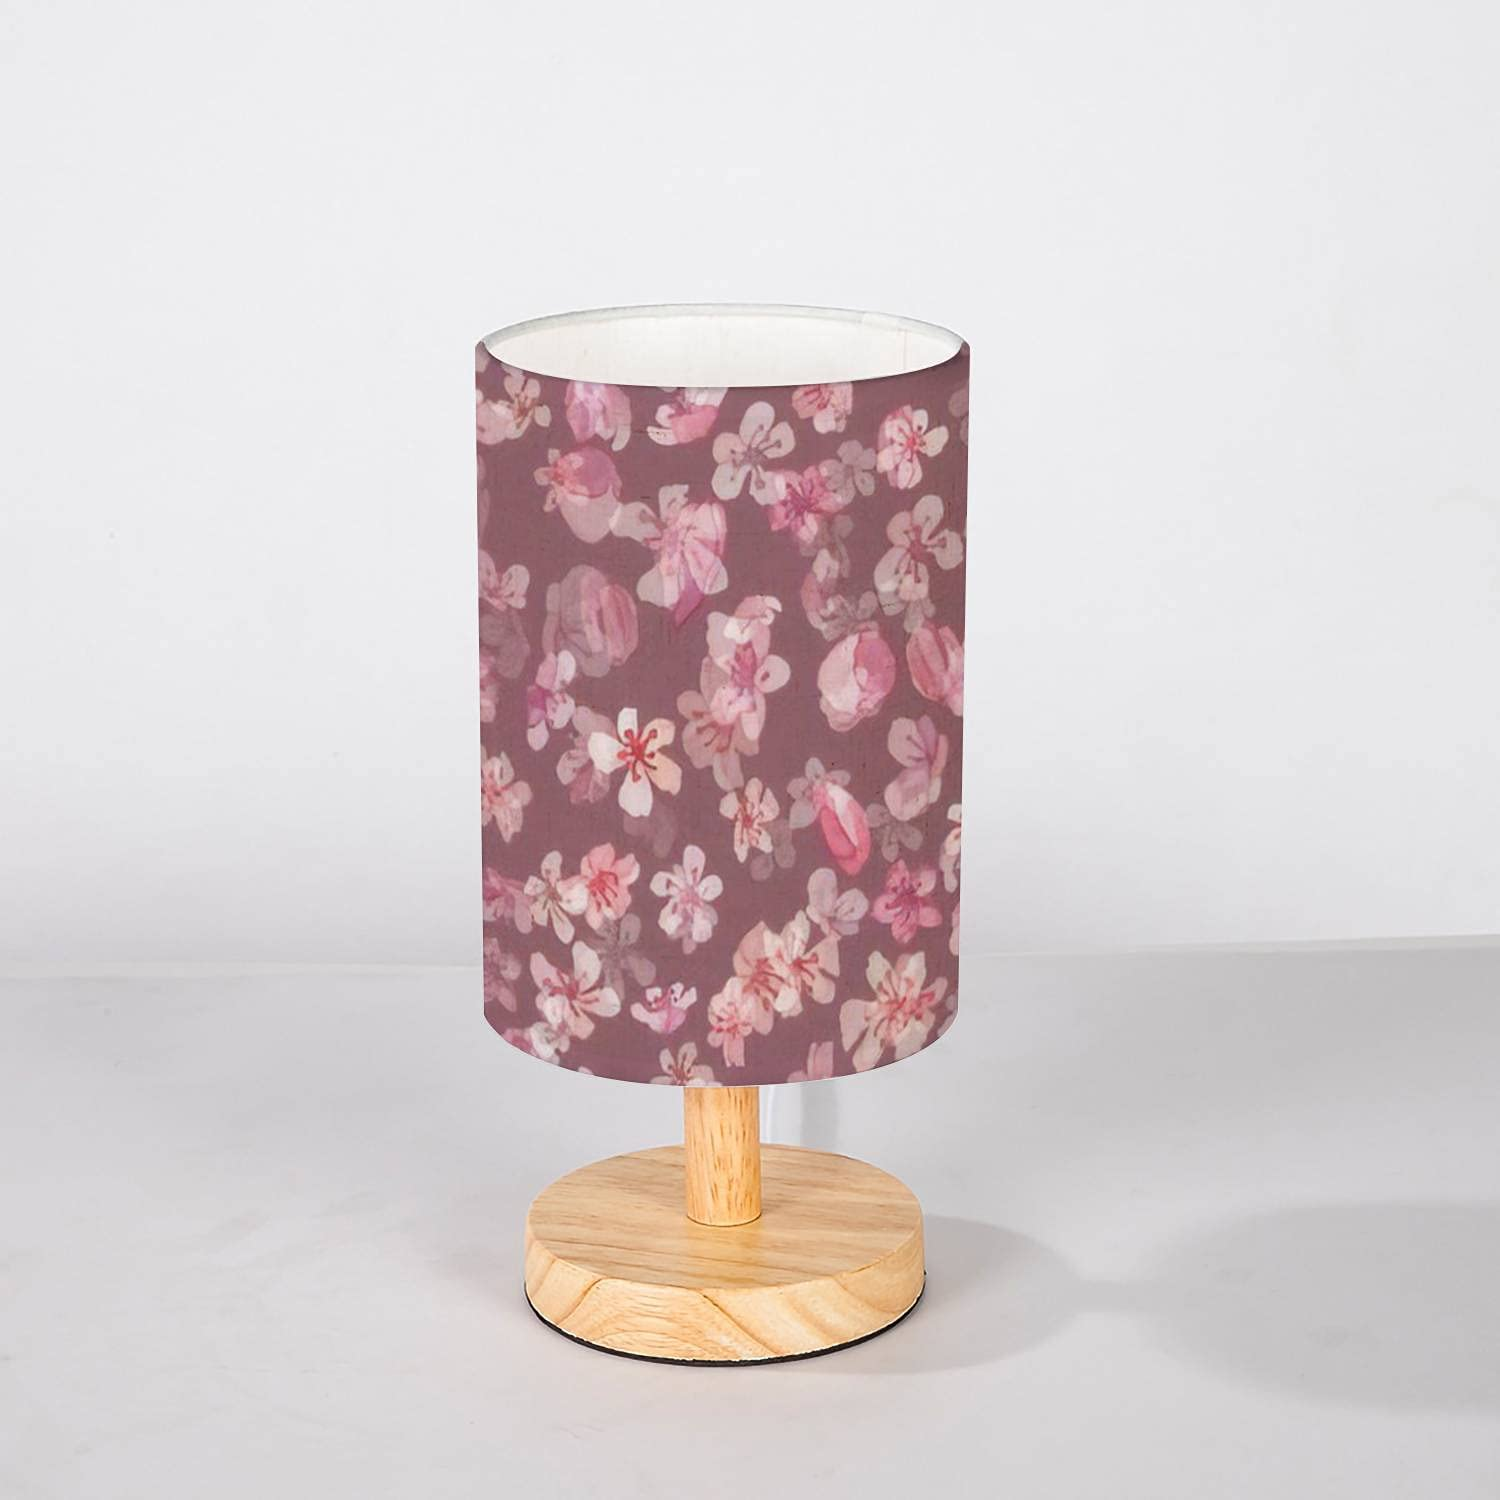 service Minimalist Bedside Table Lamp Watercolor O Seamless New mail order Blossom Leaf